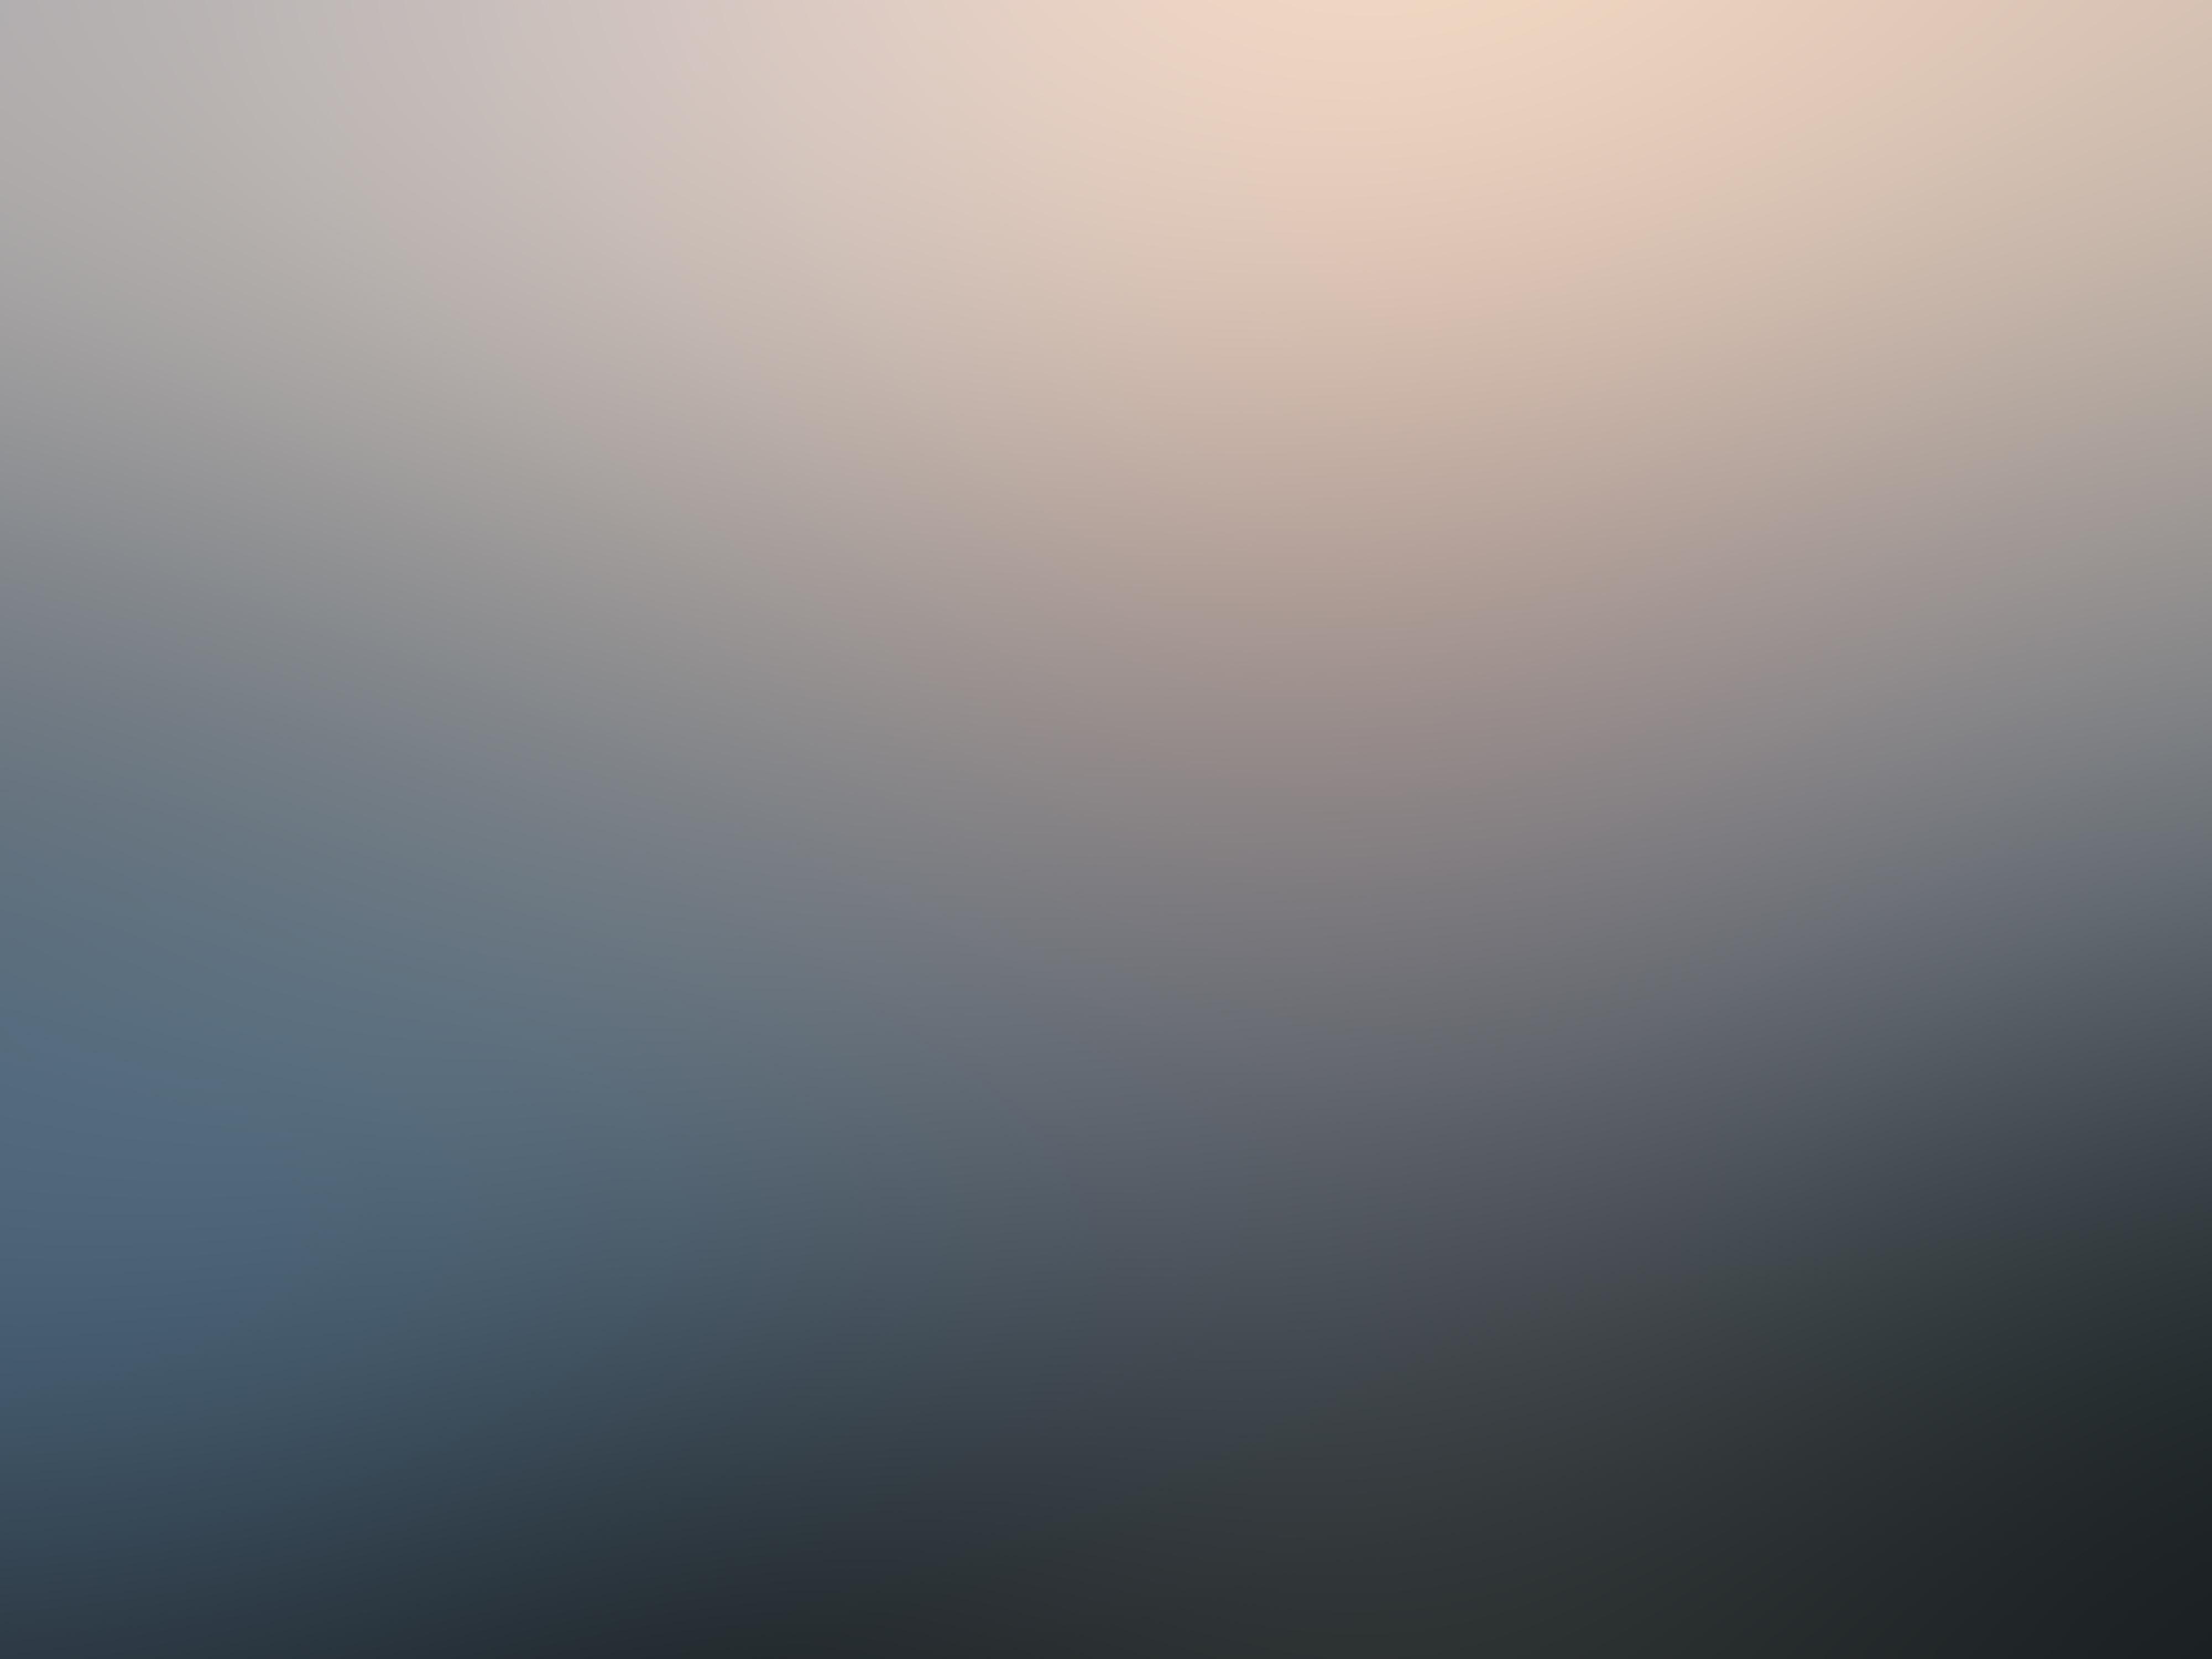 blurred-background-1